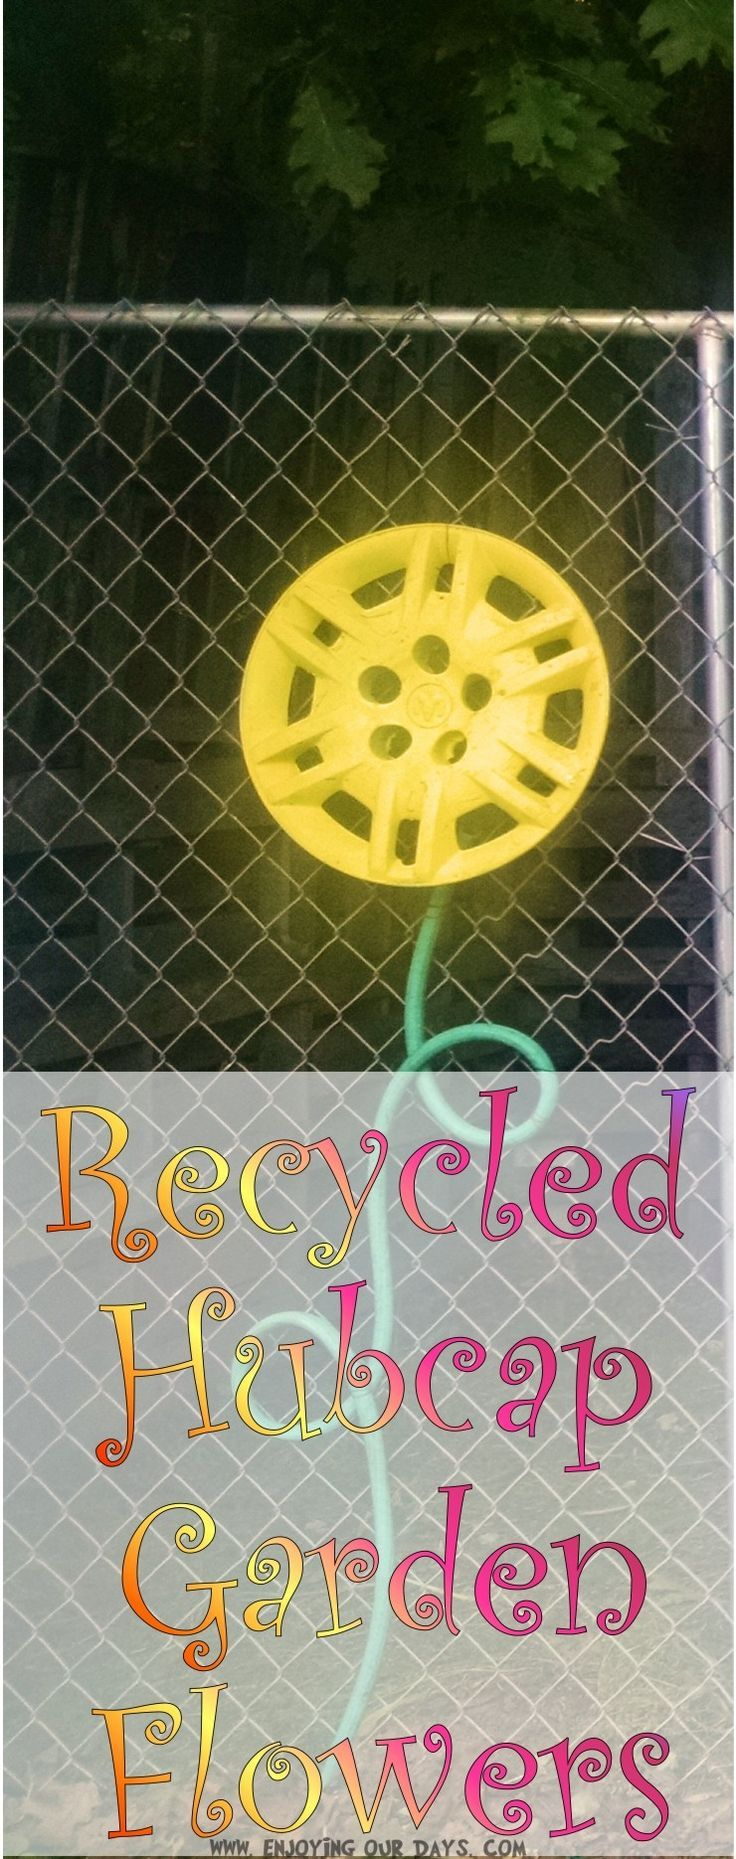 These recycled hubcap garden flowers are an easy way to add color and character to your yard. They are a quick garden art or yard art project that can be completed in an afternoon. via @jenniferspears9